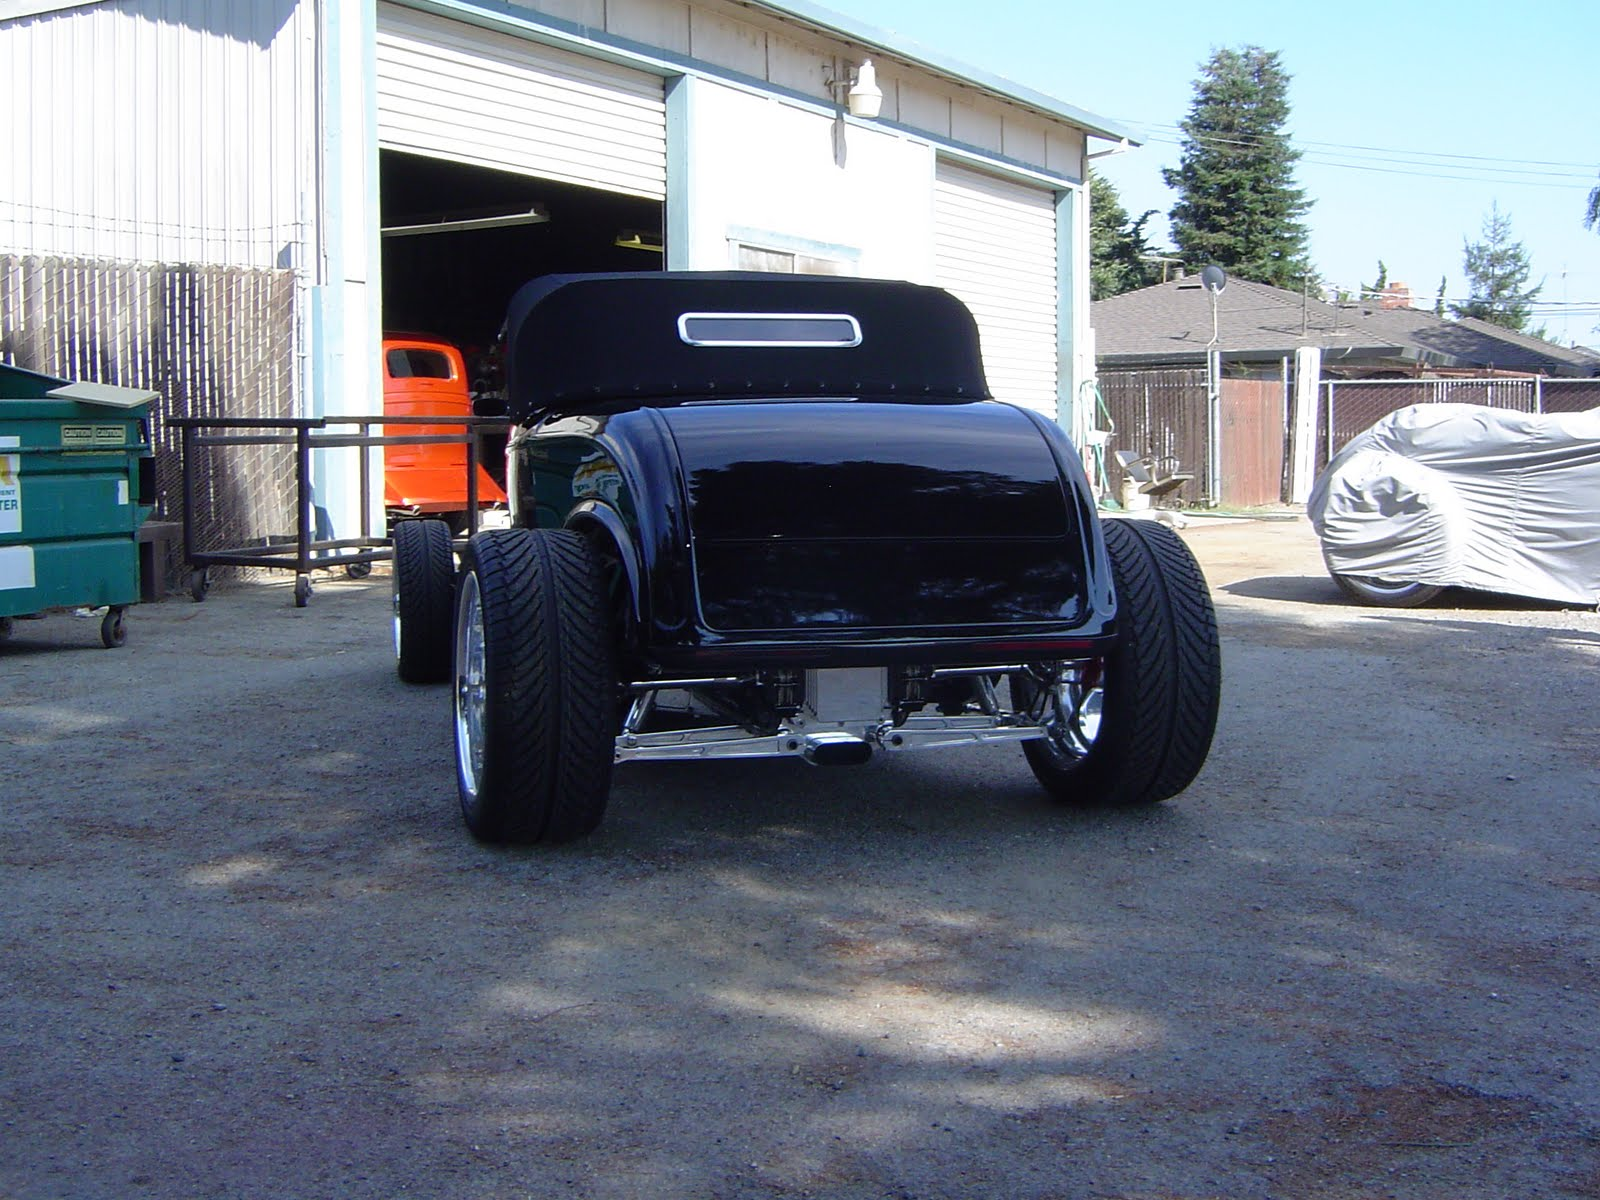 Attebury Street Rods, LLC: 1932 Ford Roadster Highboy